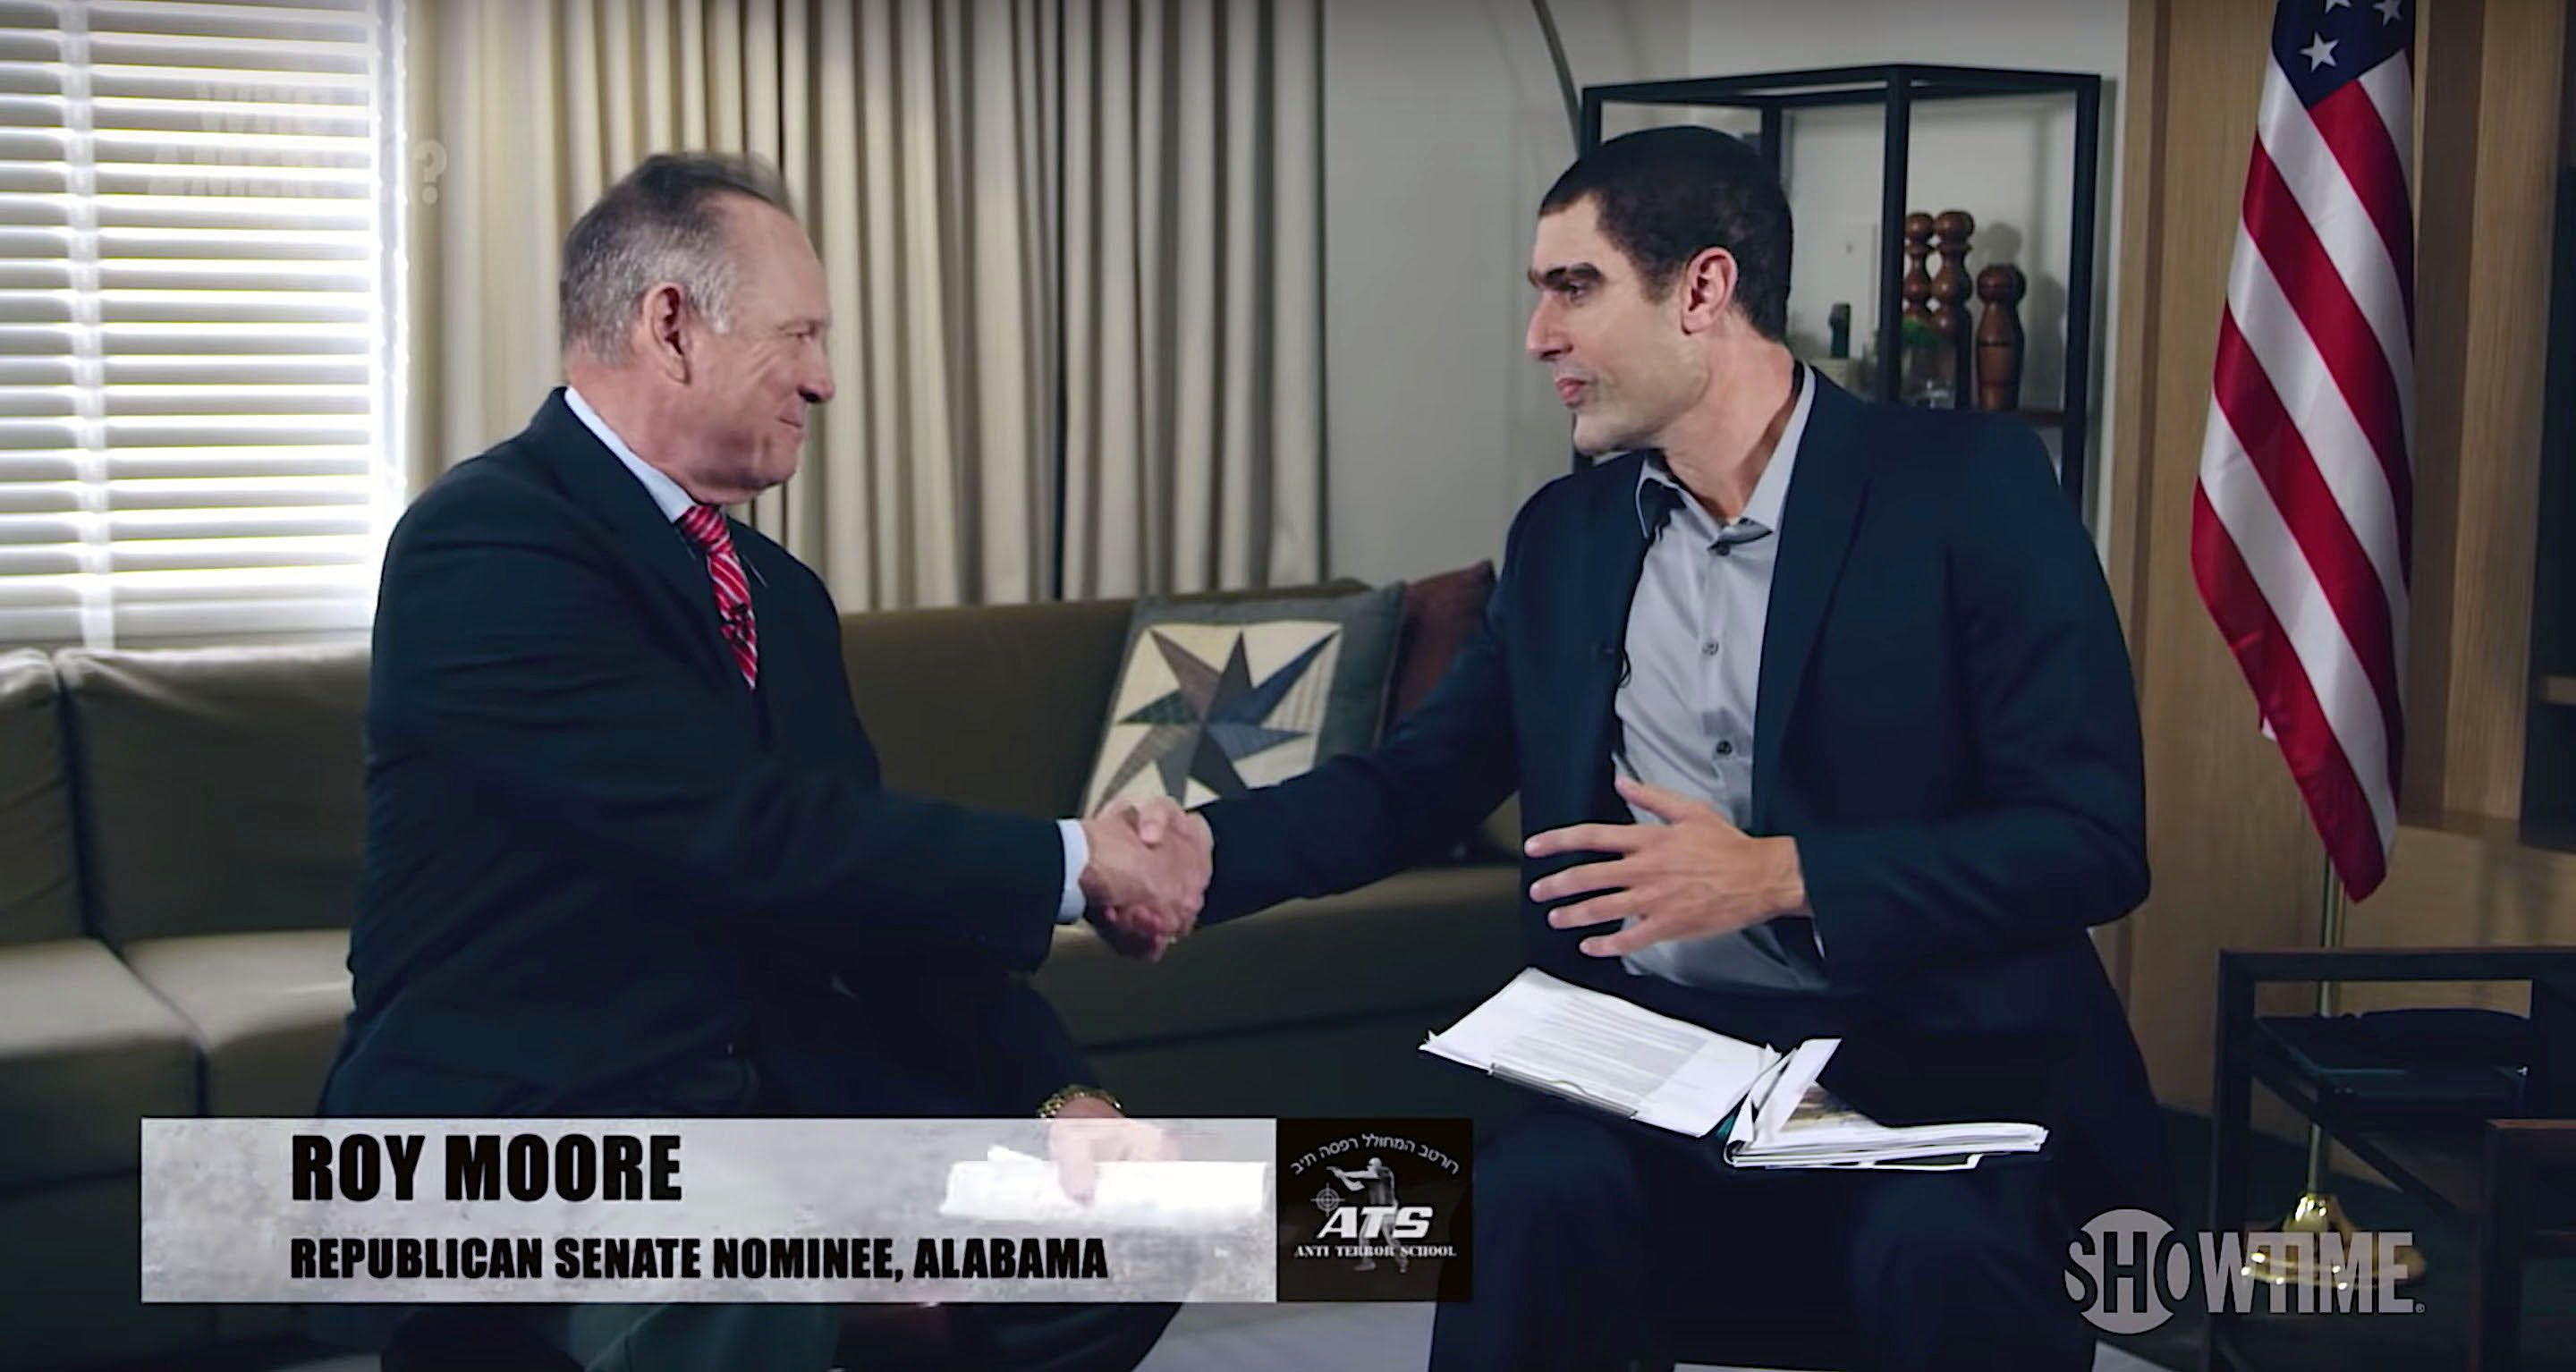 Roy Moore is interviewed by Sacha Baron Cohen in disguise on Who Is America